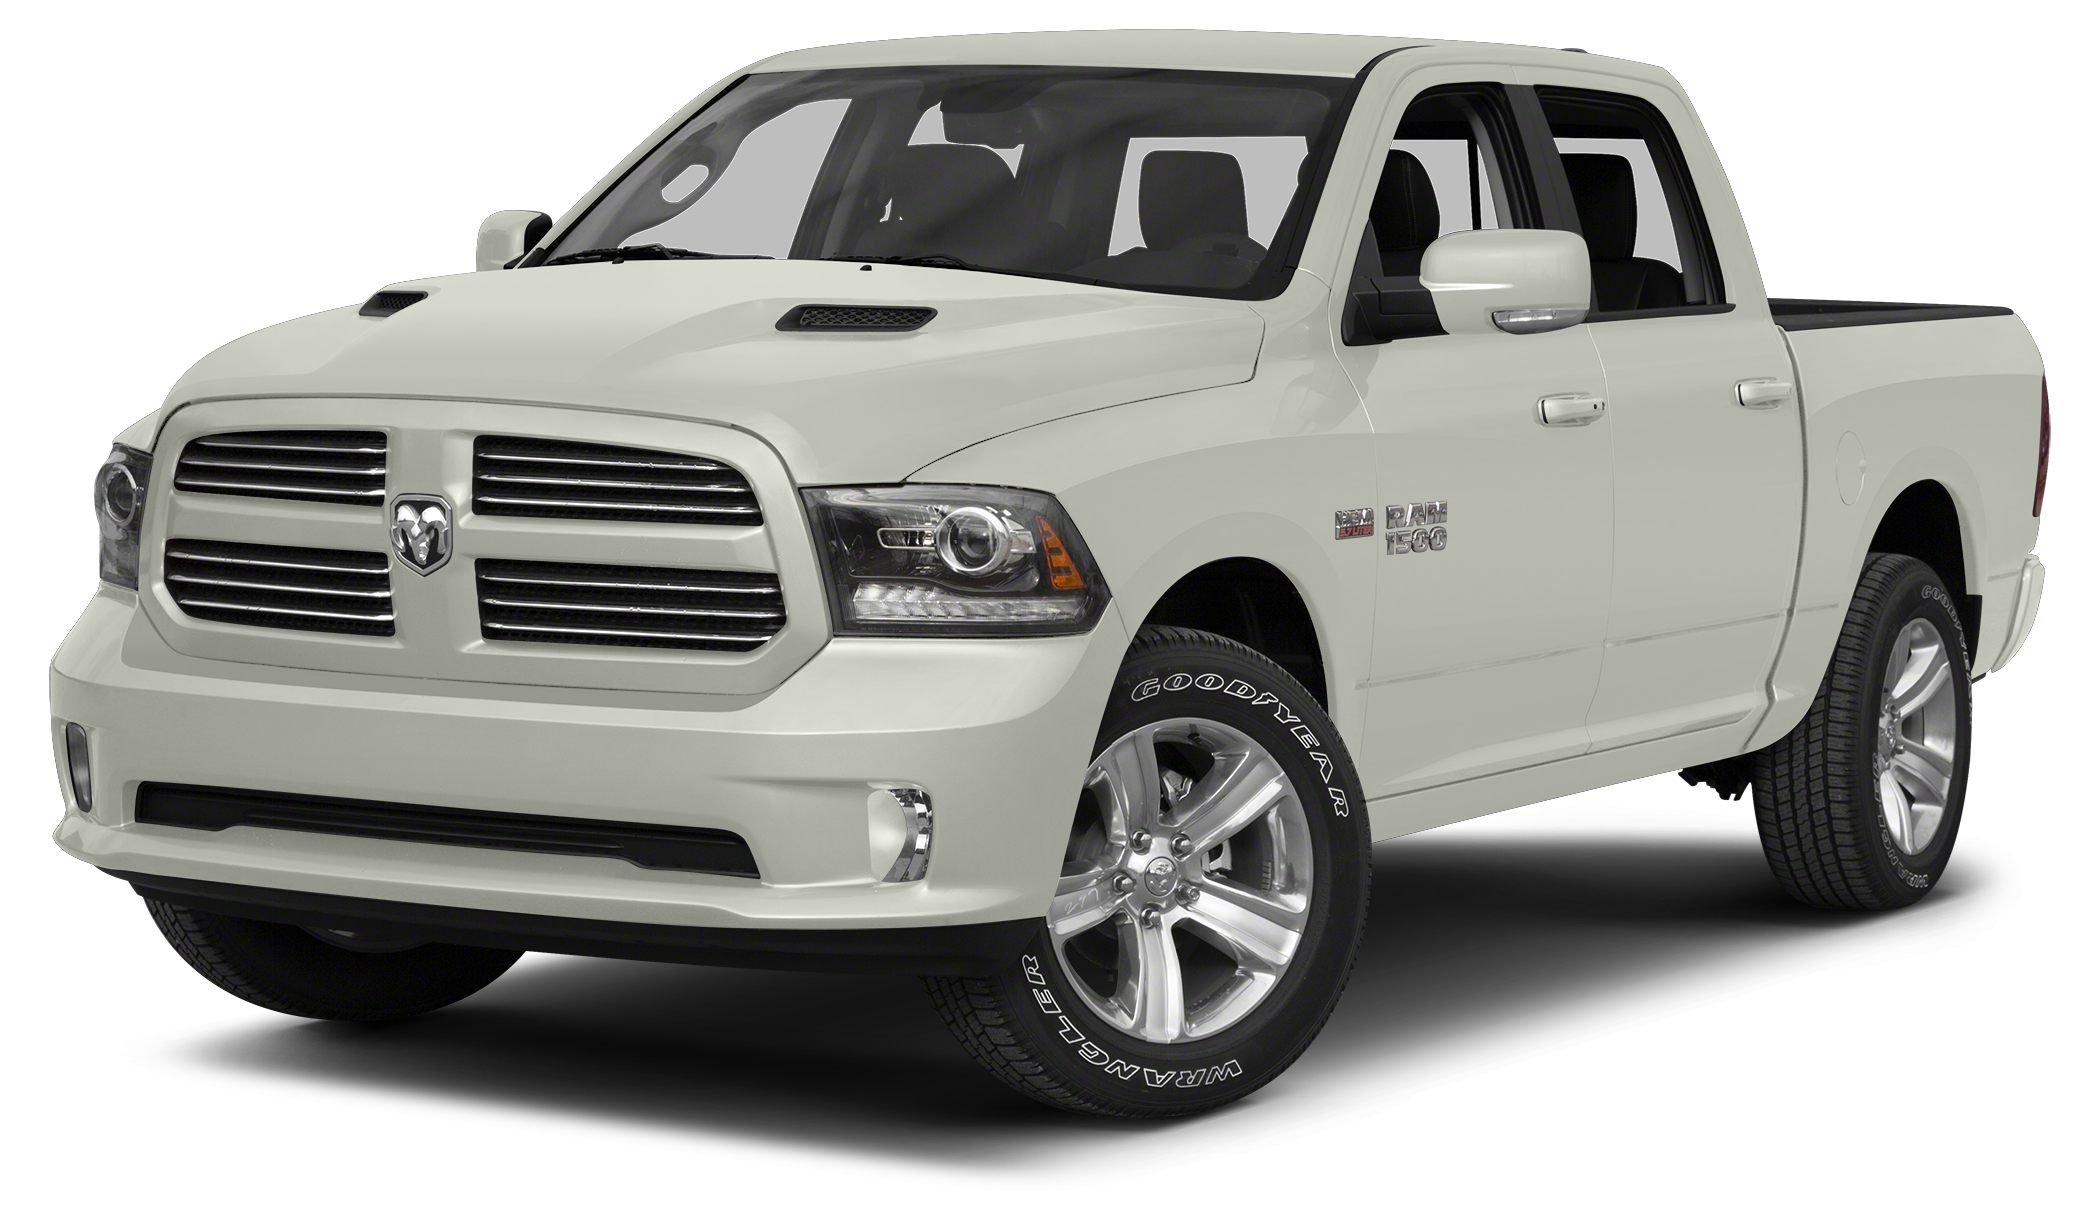 2013 RAM 1500 SLT 2013 Dodge Ram 1500 HEATED SEATSPOWER SEAT4X4REAR BACK-UP CAMERABLUETO